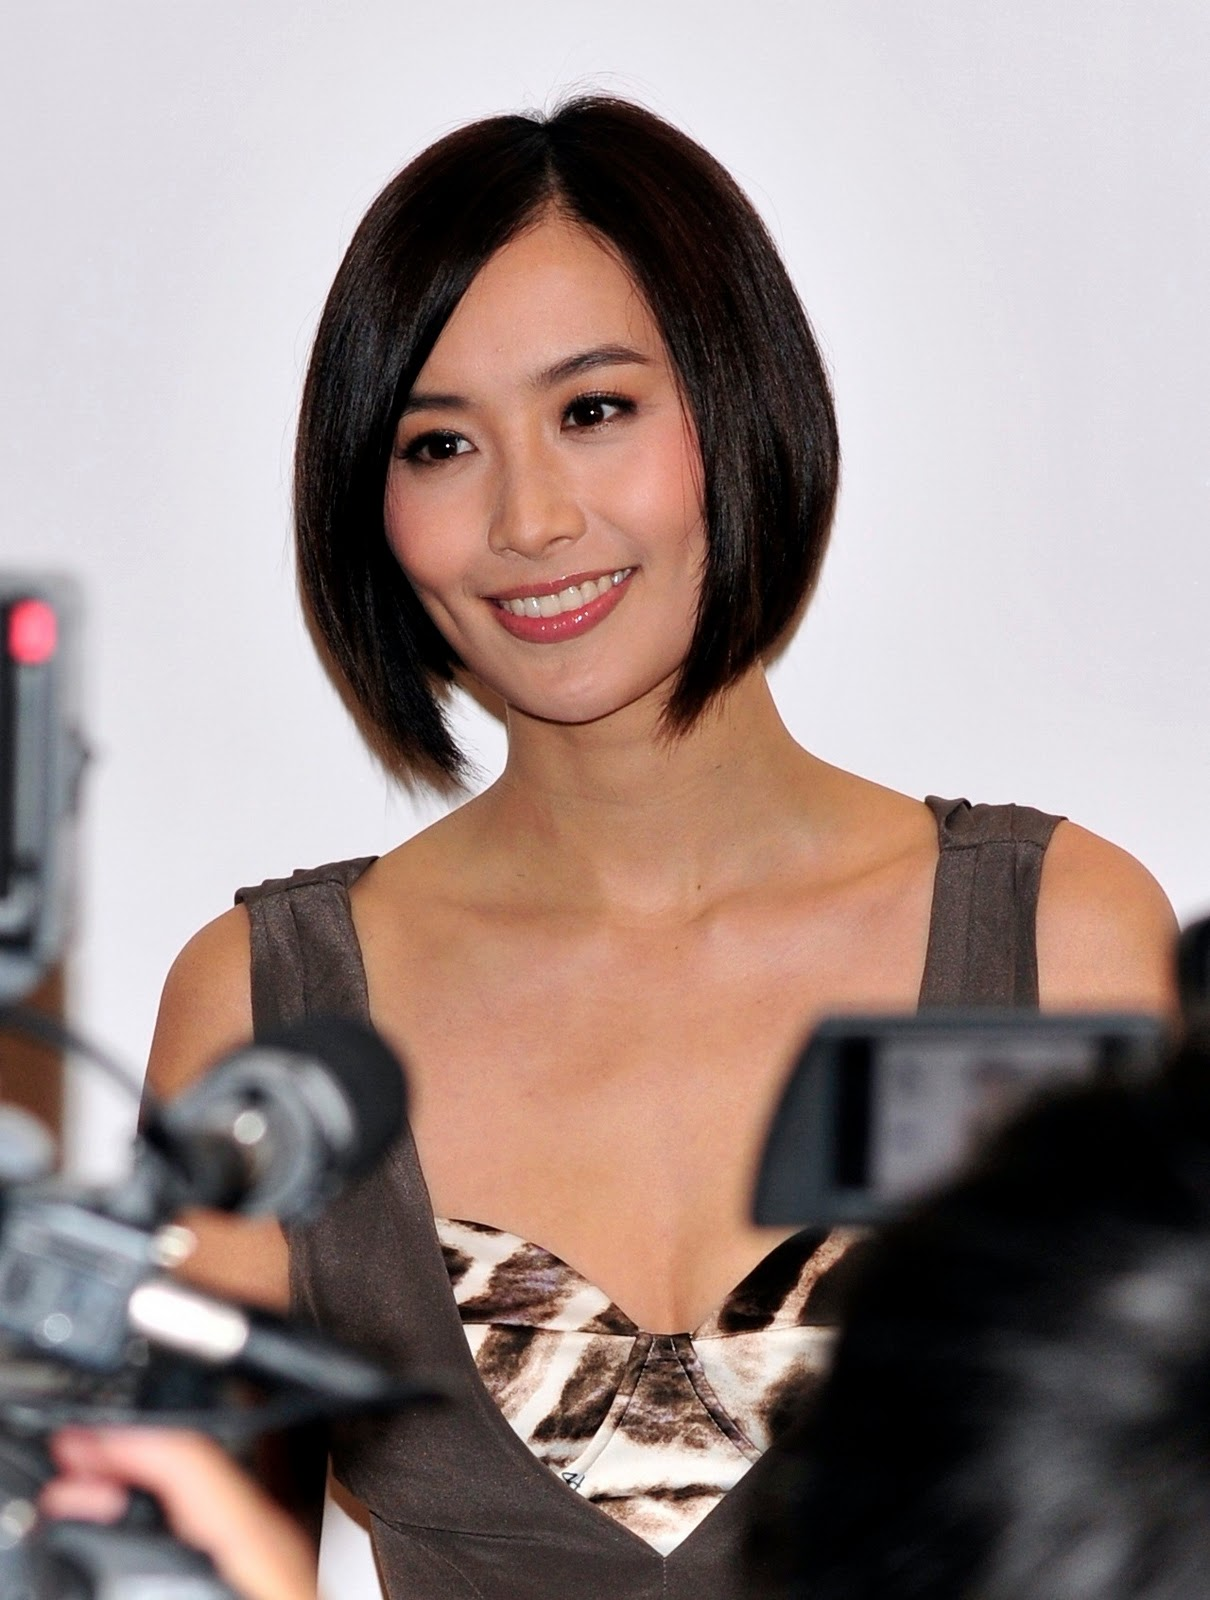 Vincy Yeung Nude Pretty fala chen new look for new drama ~ kay's entertainment